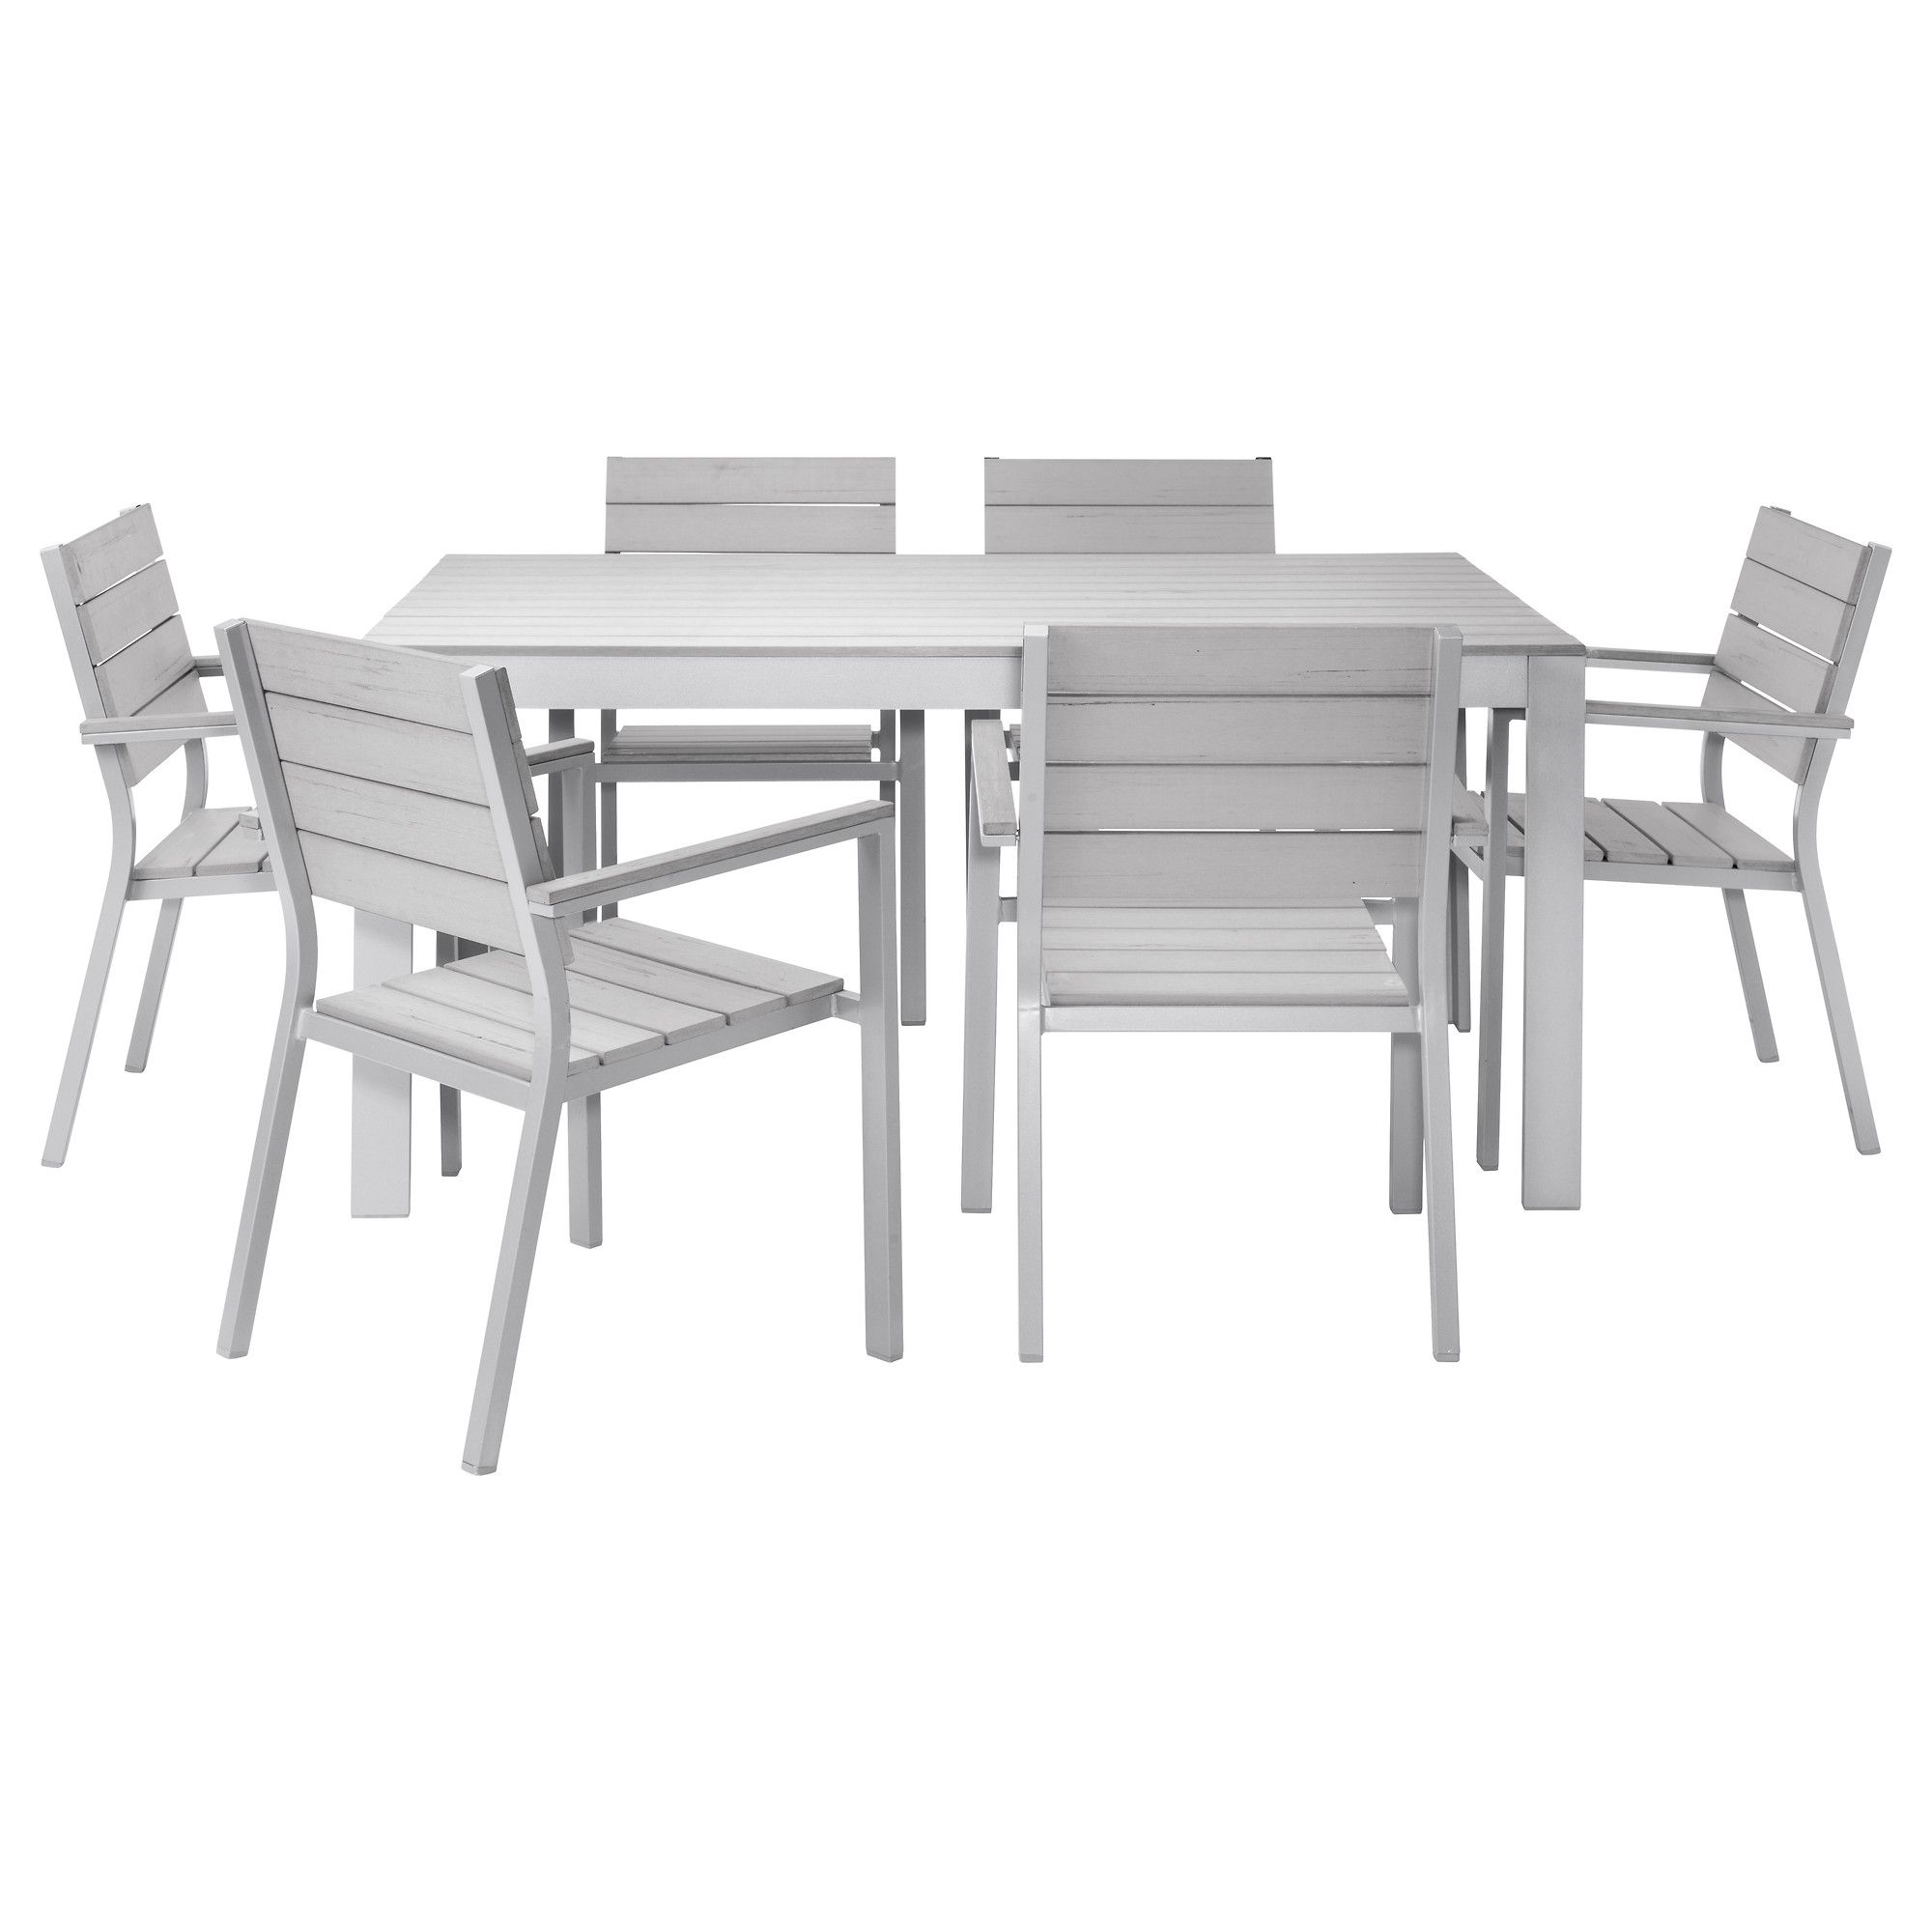 Falster Table 6 Armchairs Outdoor Ikea Polystyrene Slats Are Weather Resistant And Easy To Care For